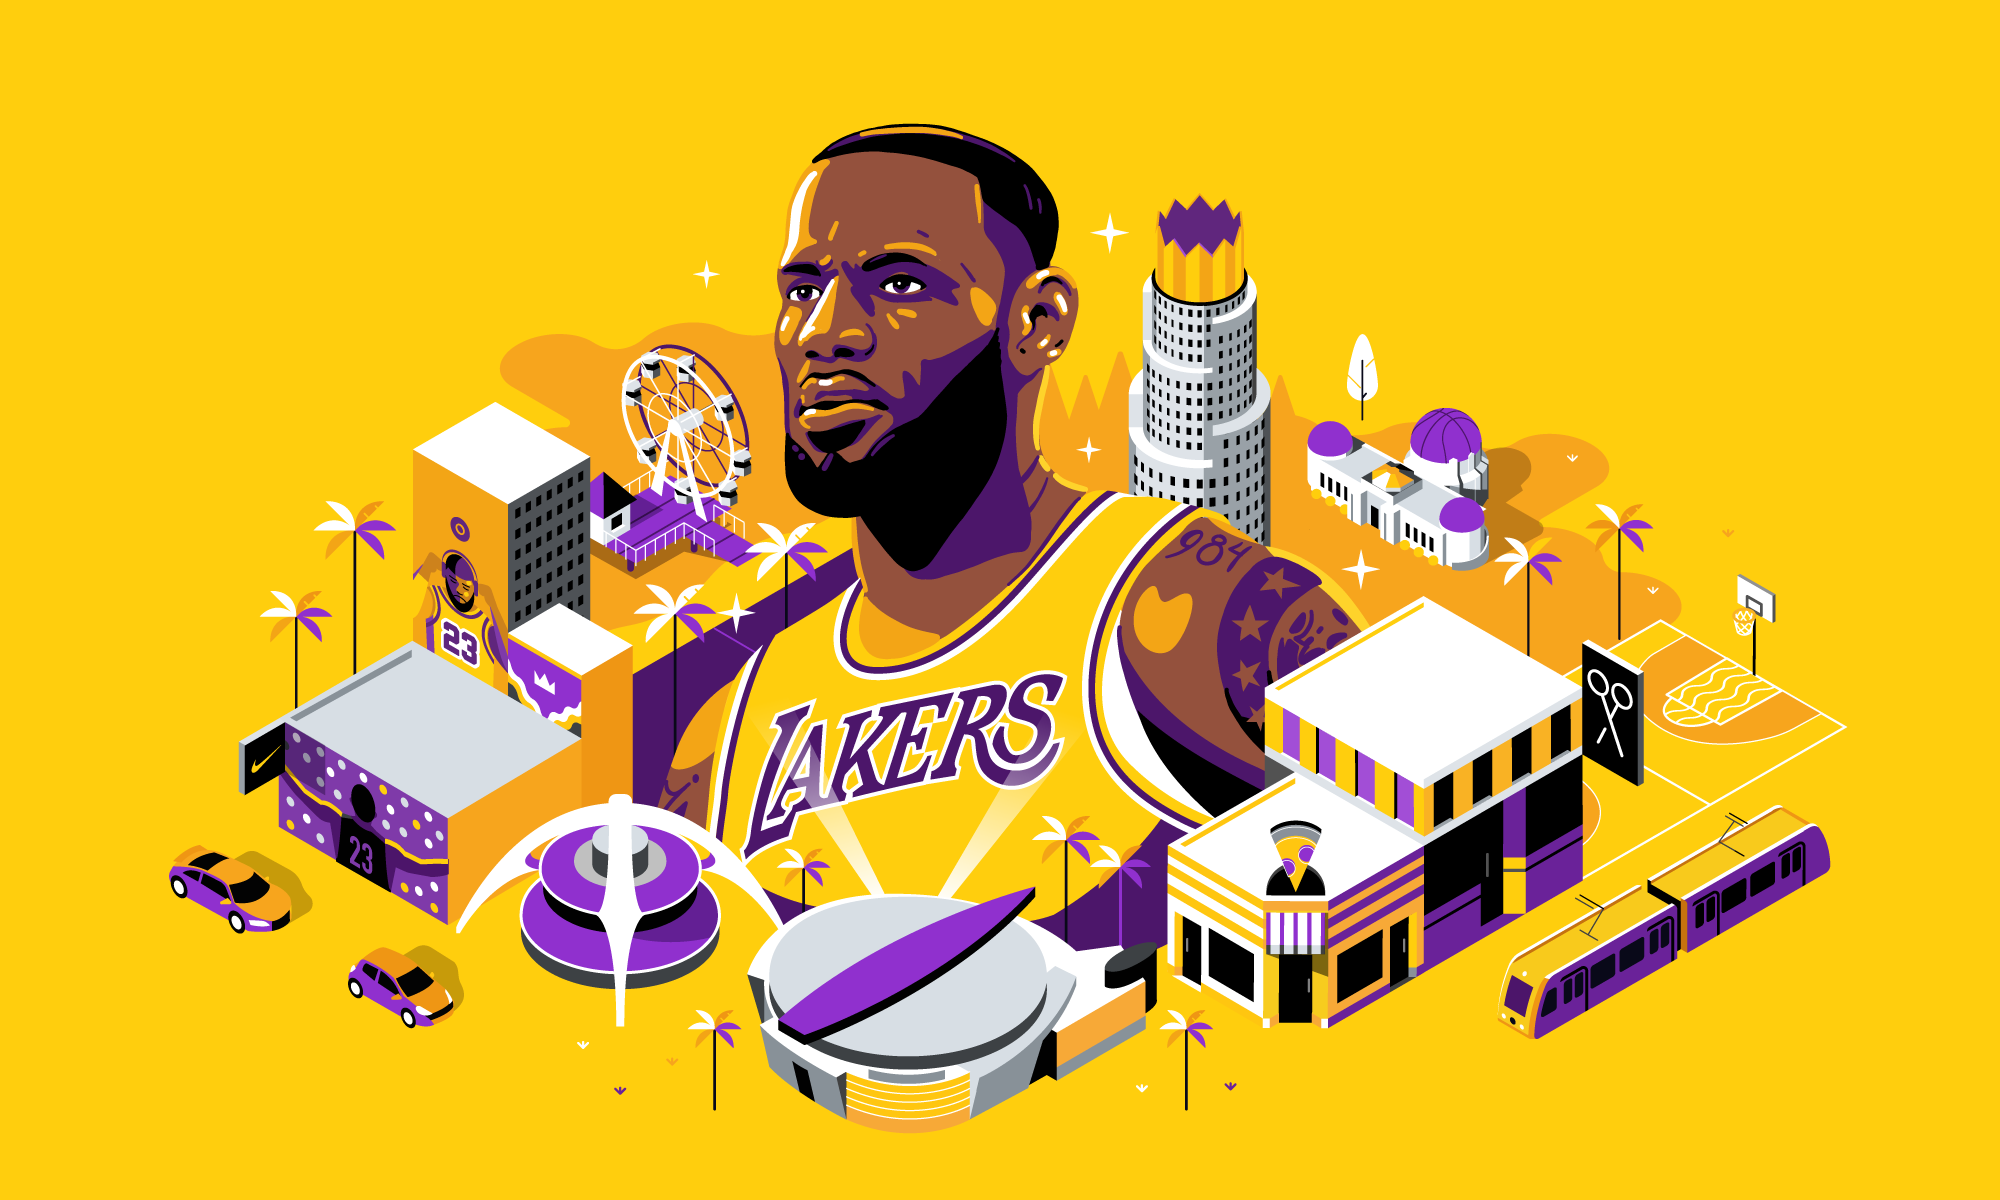 Espn Bron Bron Land Down The Street Designs